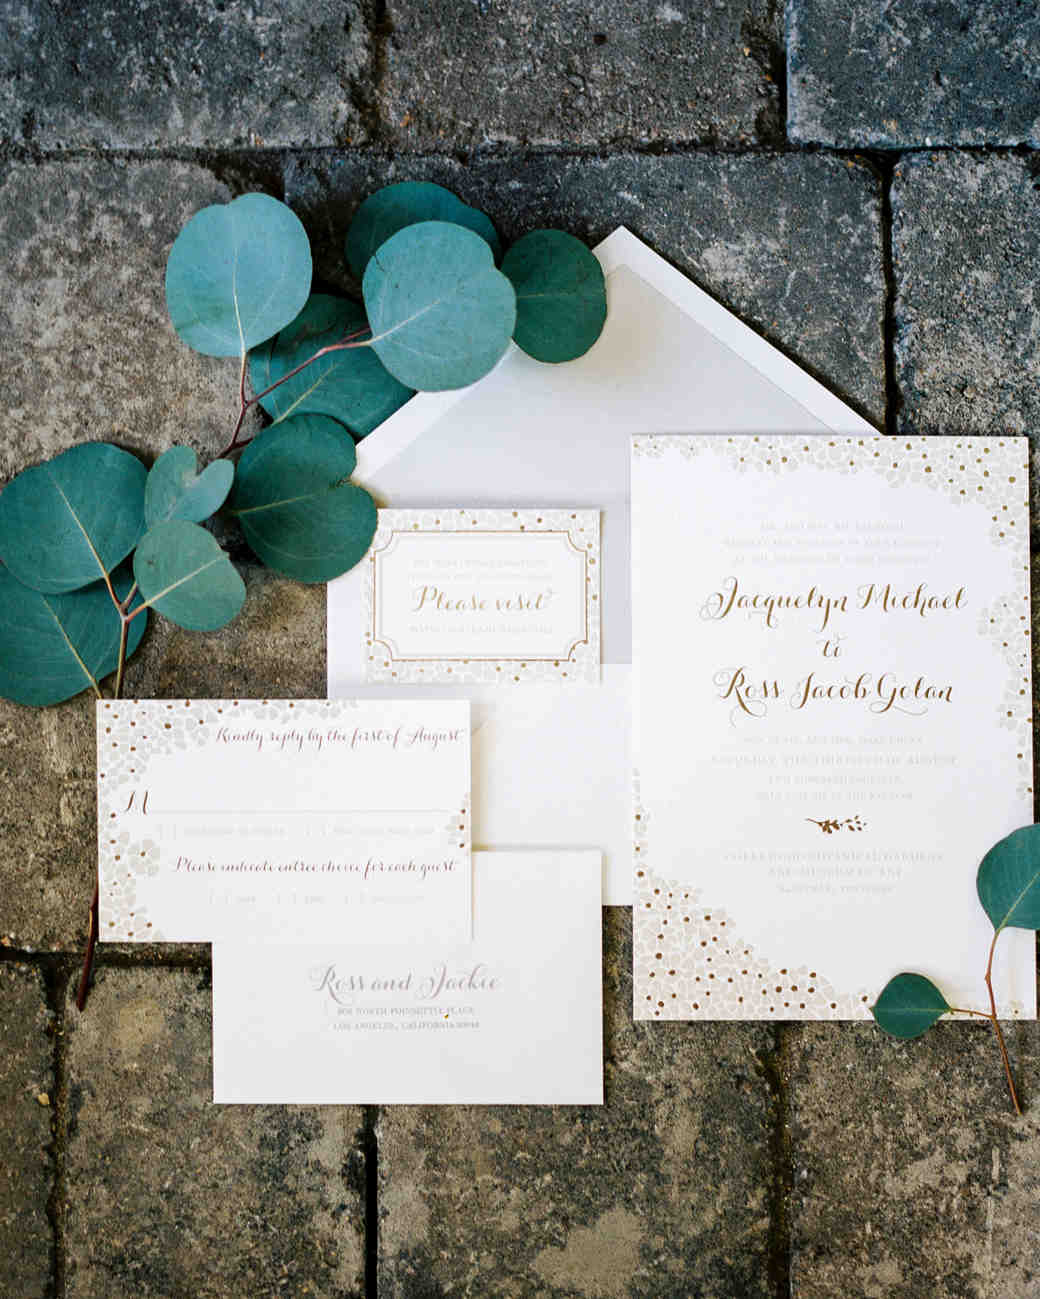 jackie-ross-wedding-invite-005-s111775-0215.jpg